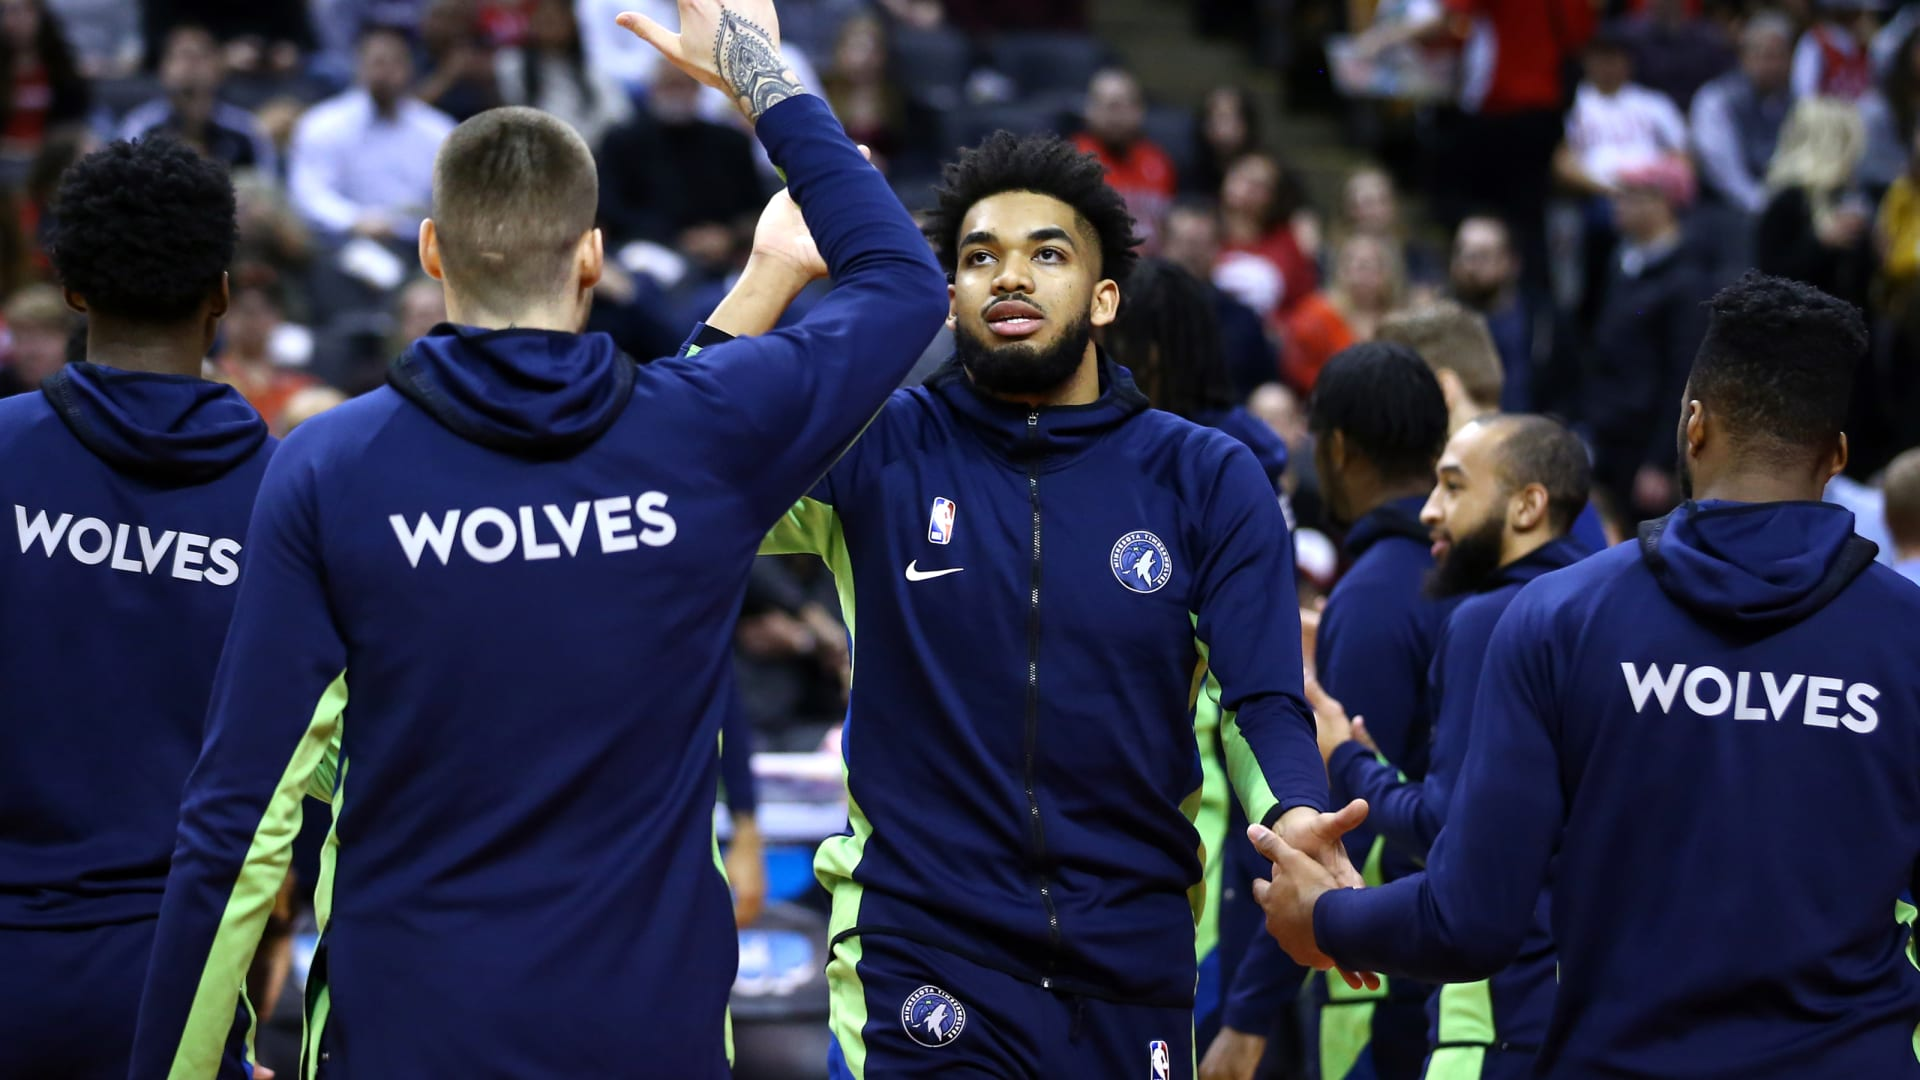 What will Minnesota Timberwolves' rotation look like with Towns out?